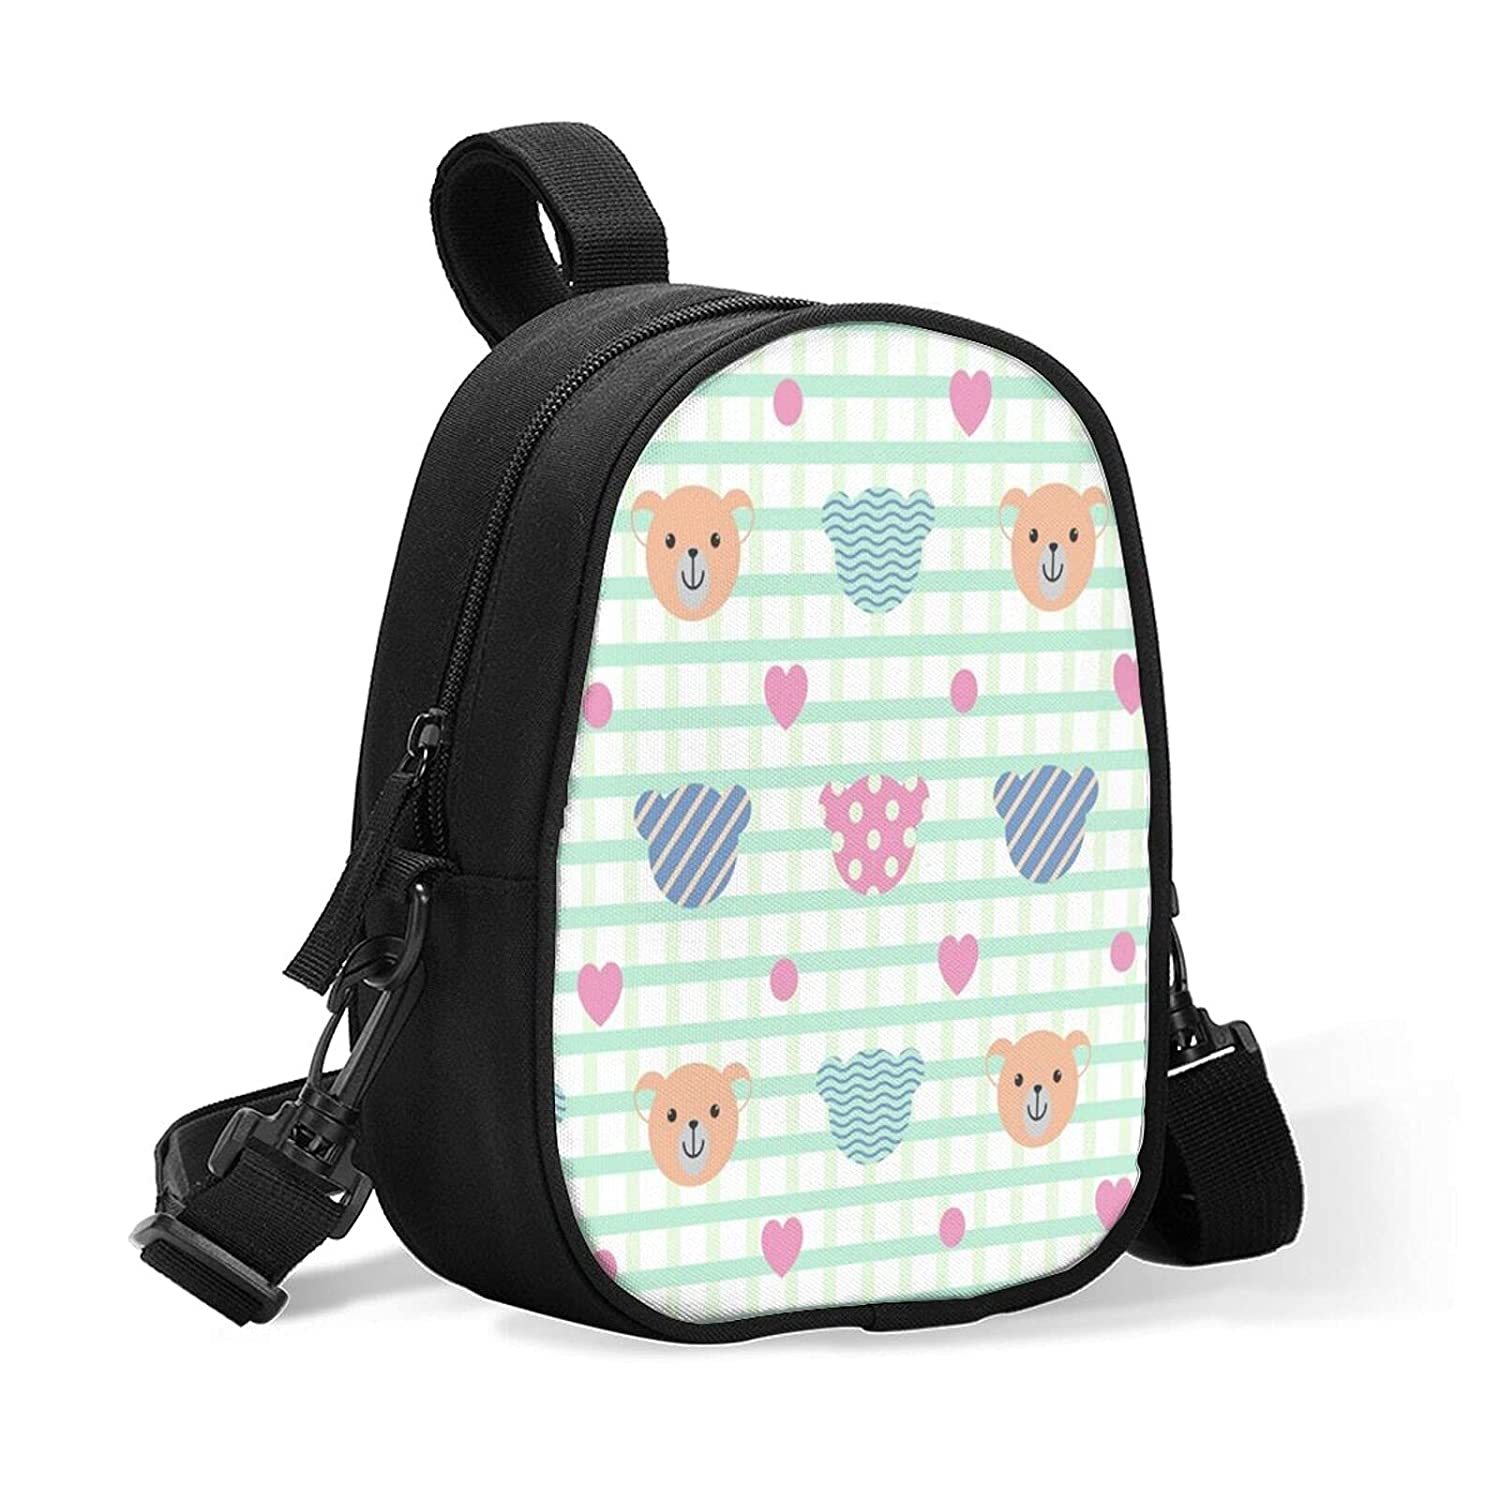 Cute Bear Max 59% OFF Breastmilk Baby Bottle New product! New type Travel Bag Cooler Br Portable